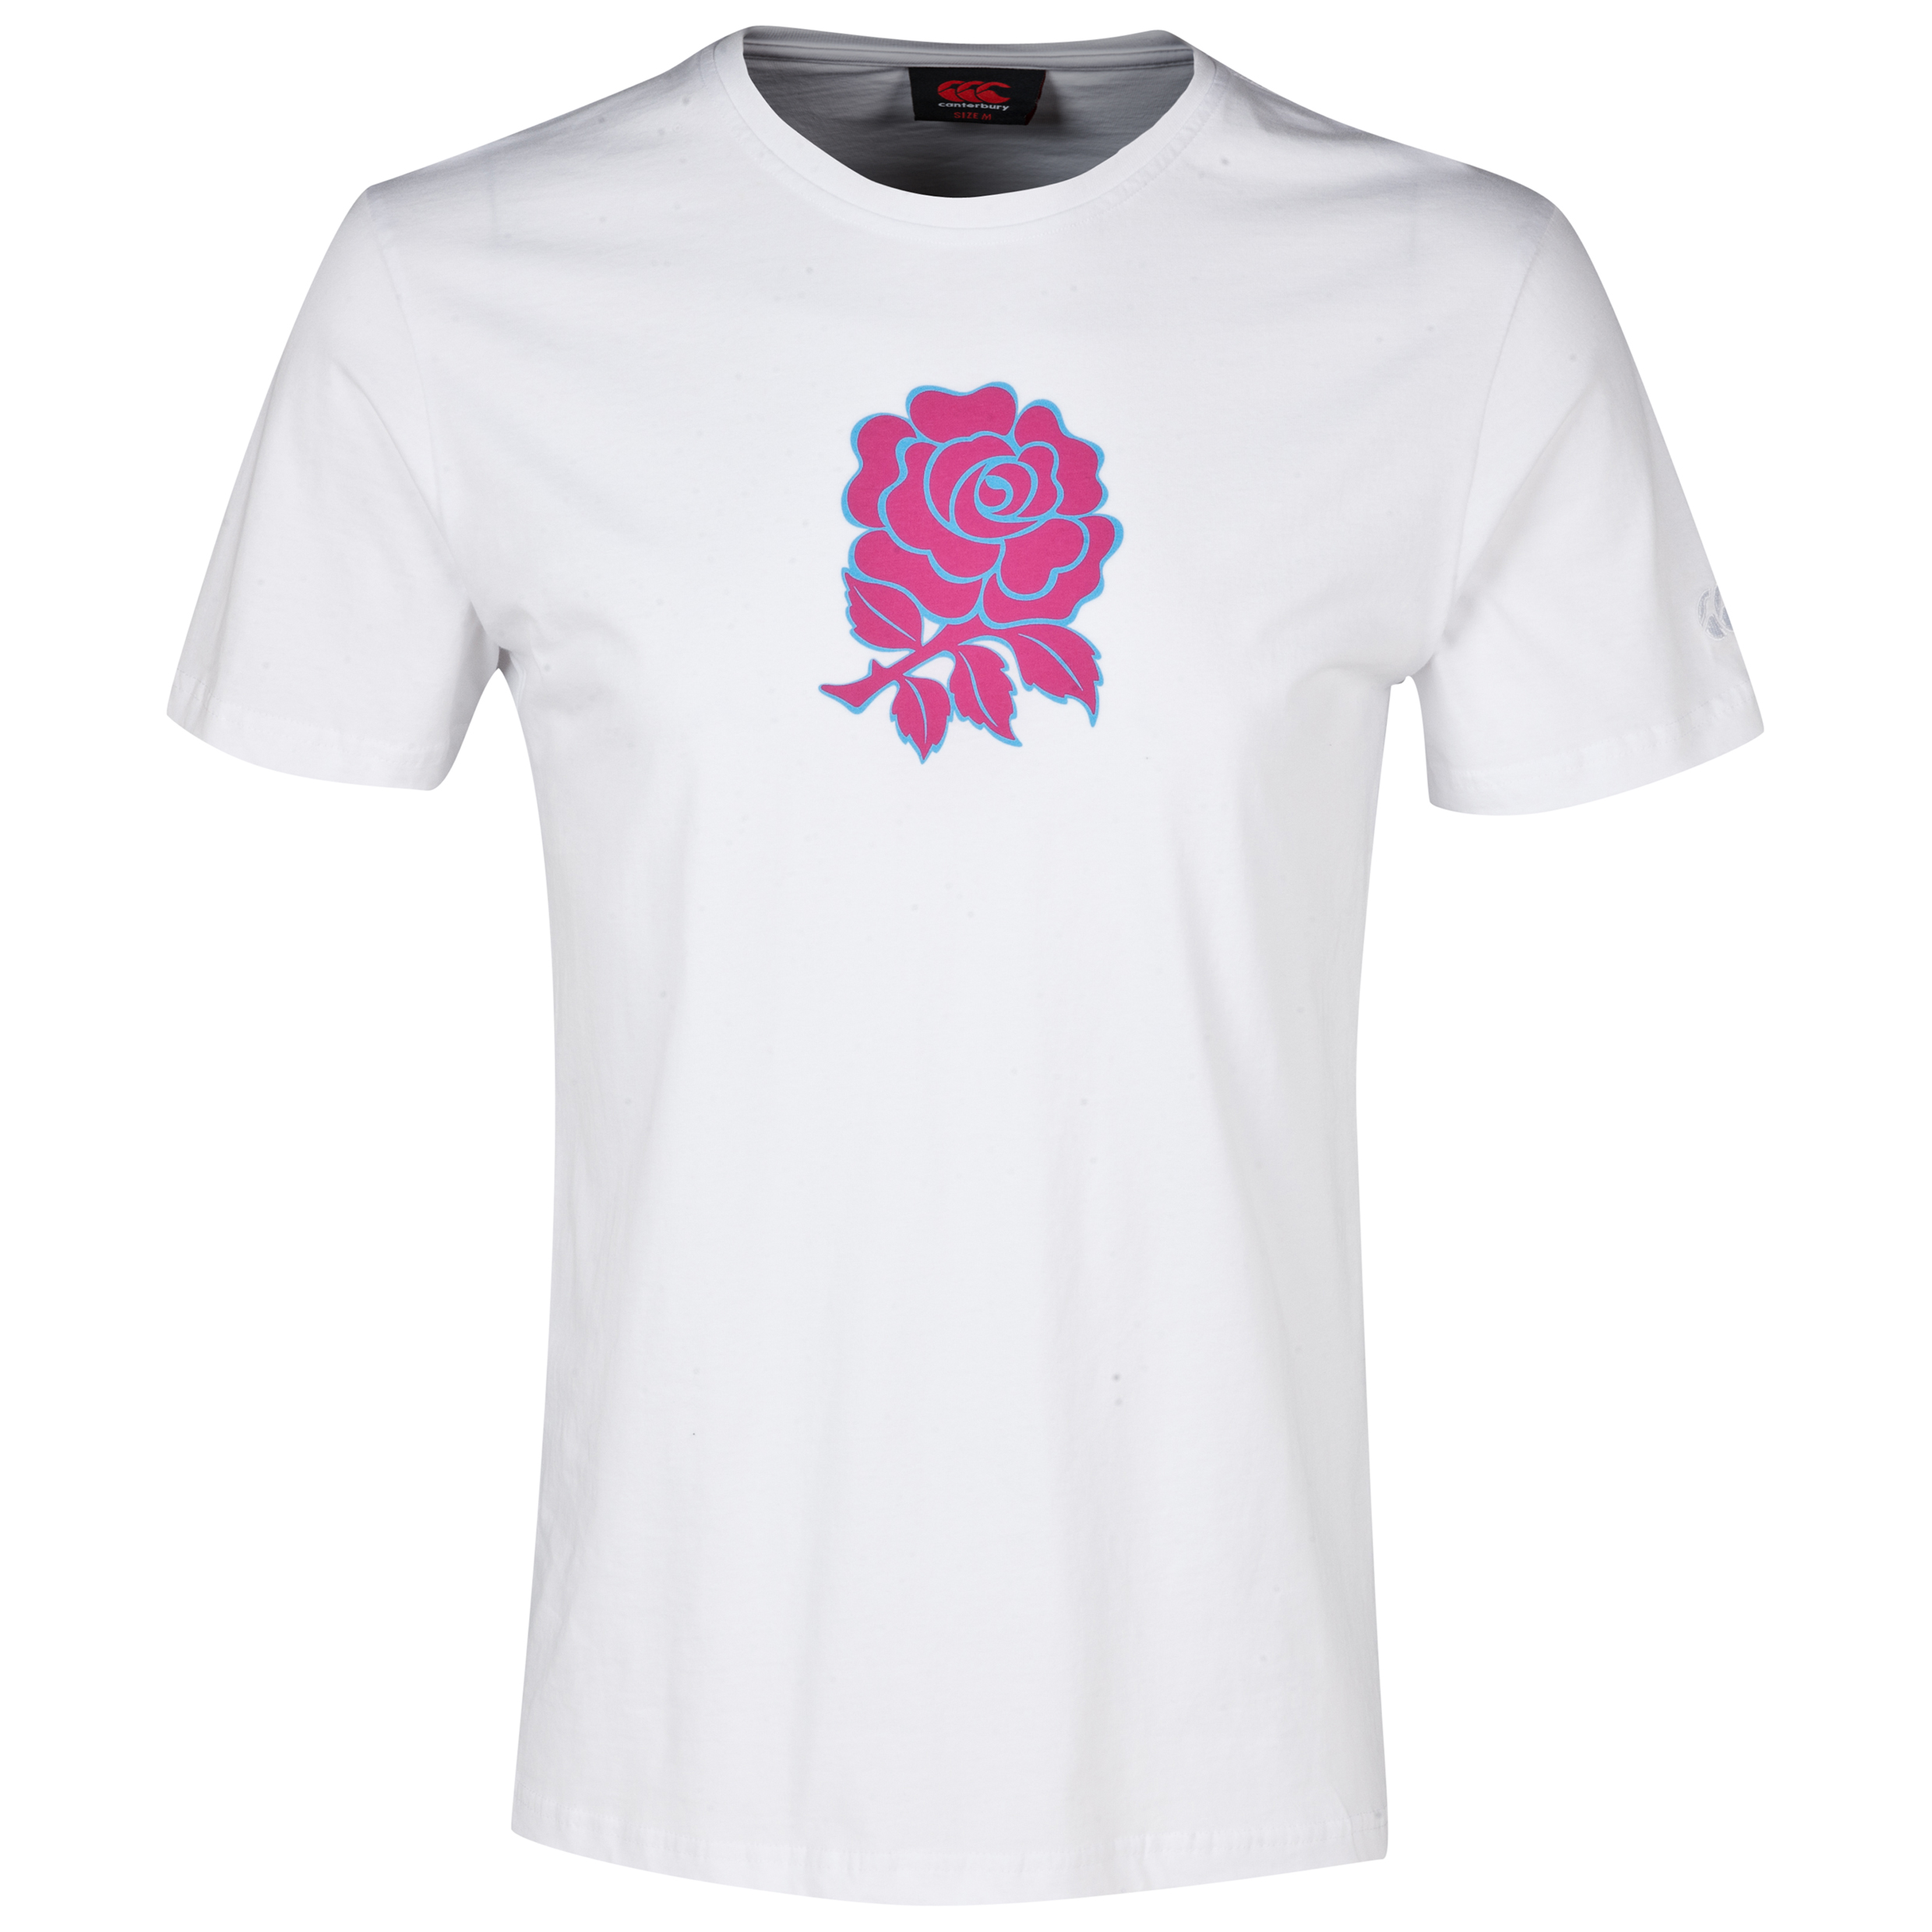 England Uglies Rose Graphic Cotton T-Shirt White